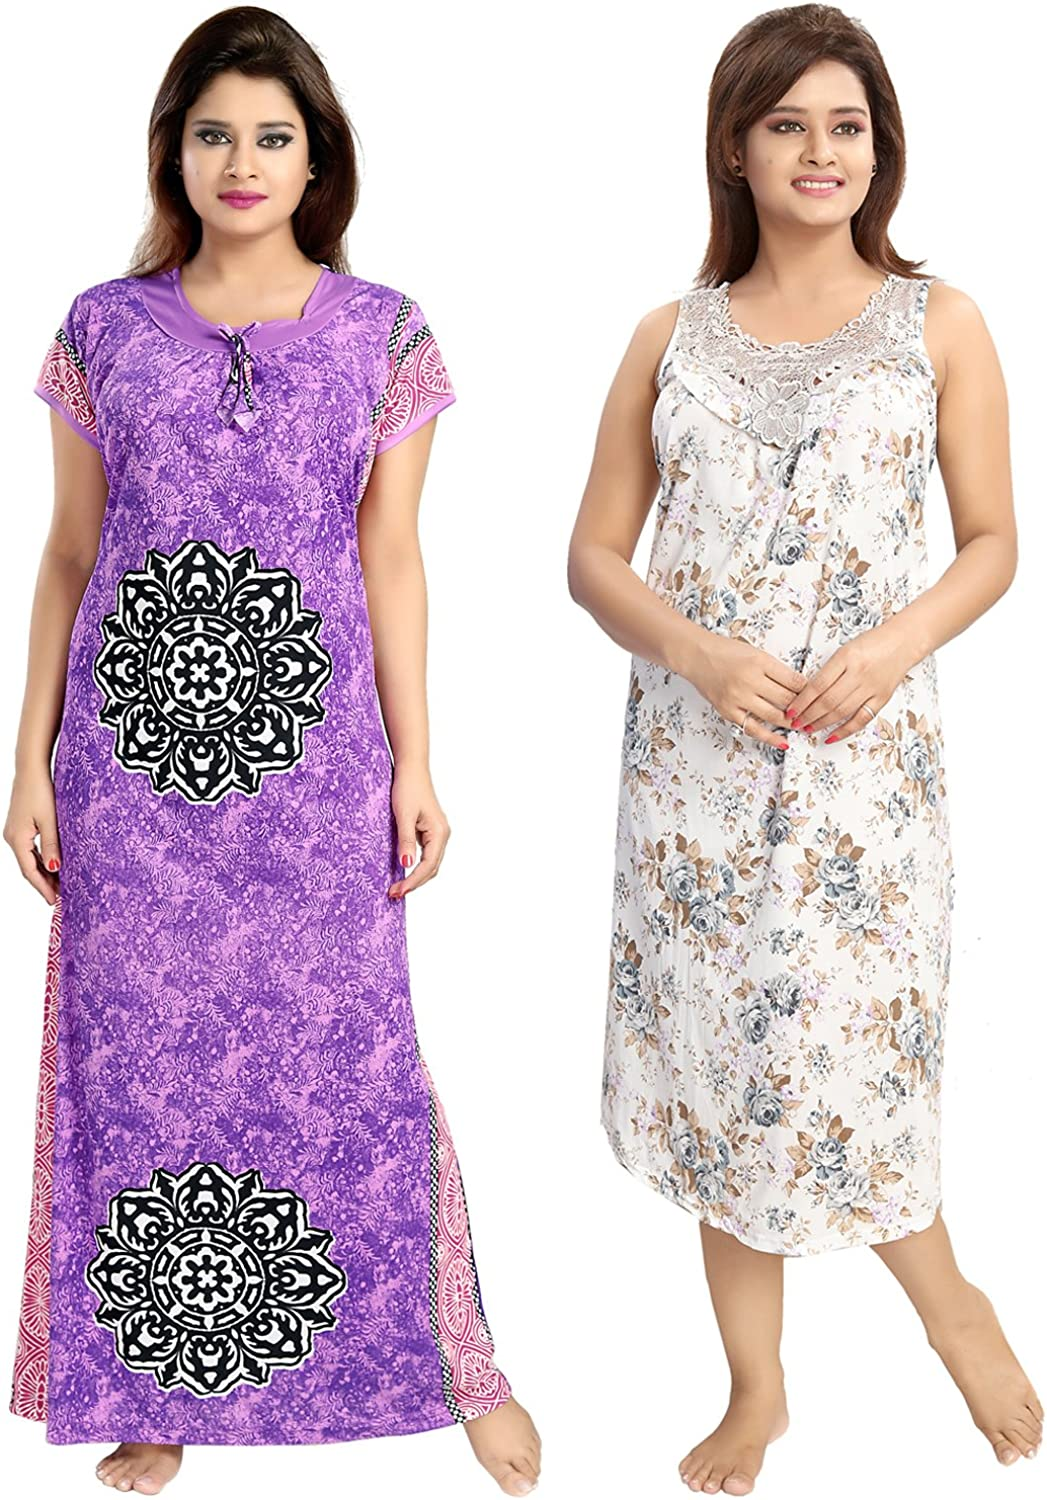 Be You Serena Satin PurpleGrey Women Floral Printed Nightgowns Combo pack of 2